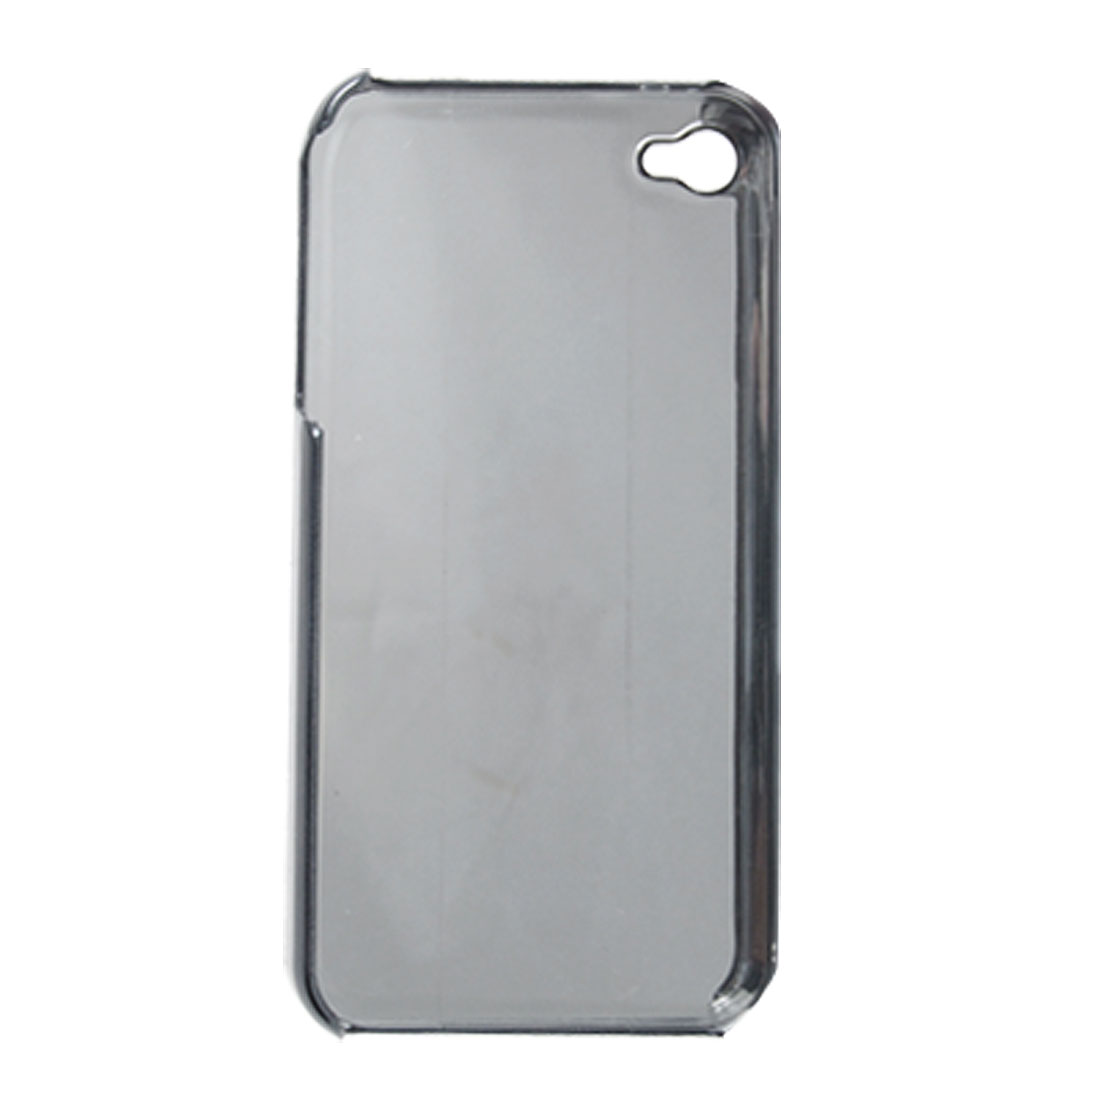 Black Hard Plastic Chrome Plated Back Case Cover for iPhone 4G 4